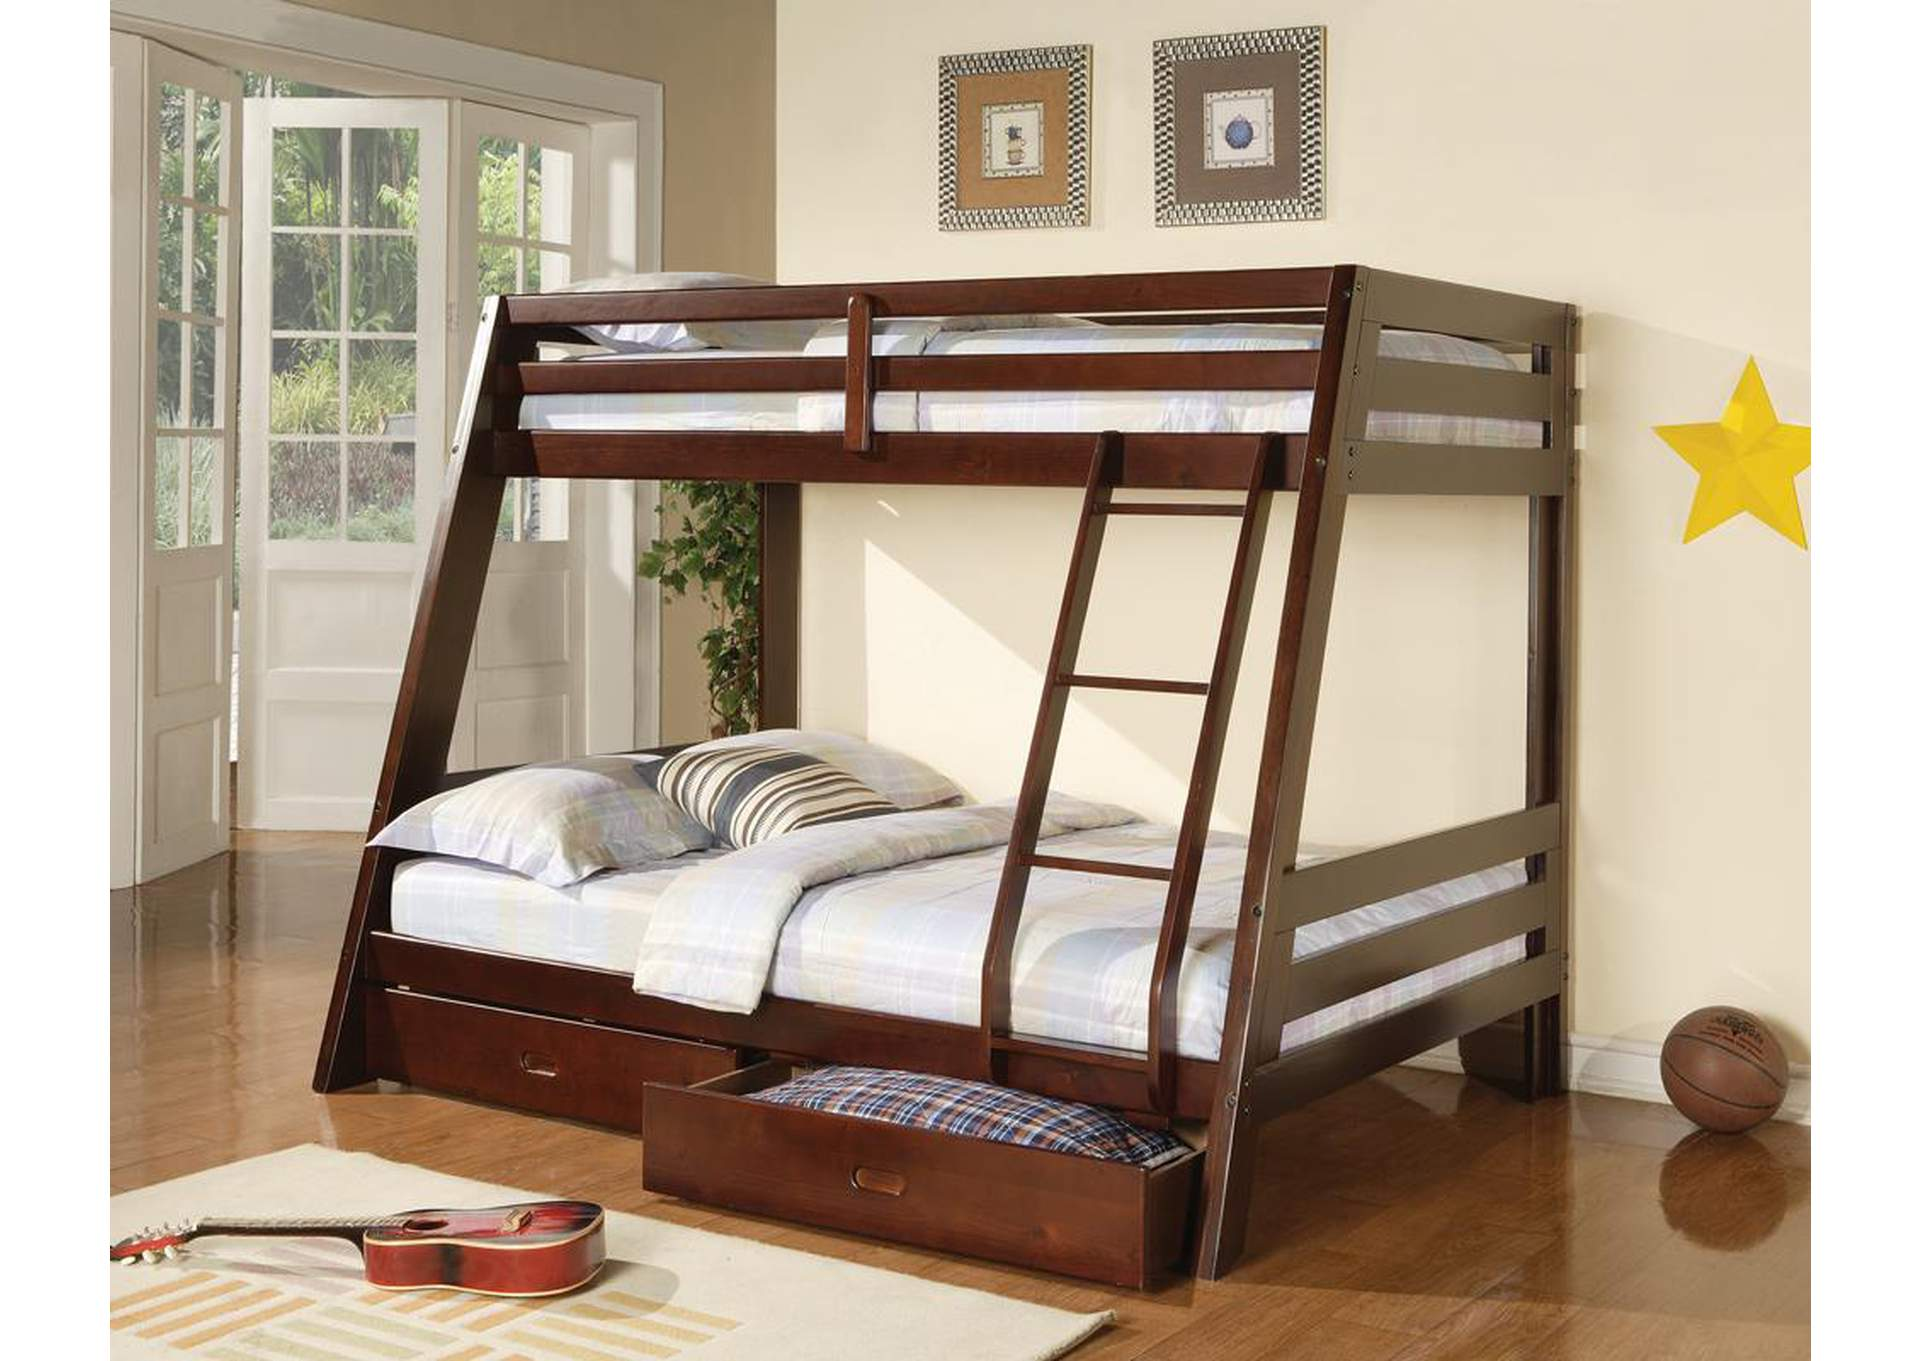 Attrayant Twin/Full Bunk Bed,Coaster Furniture